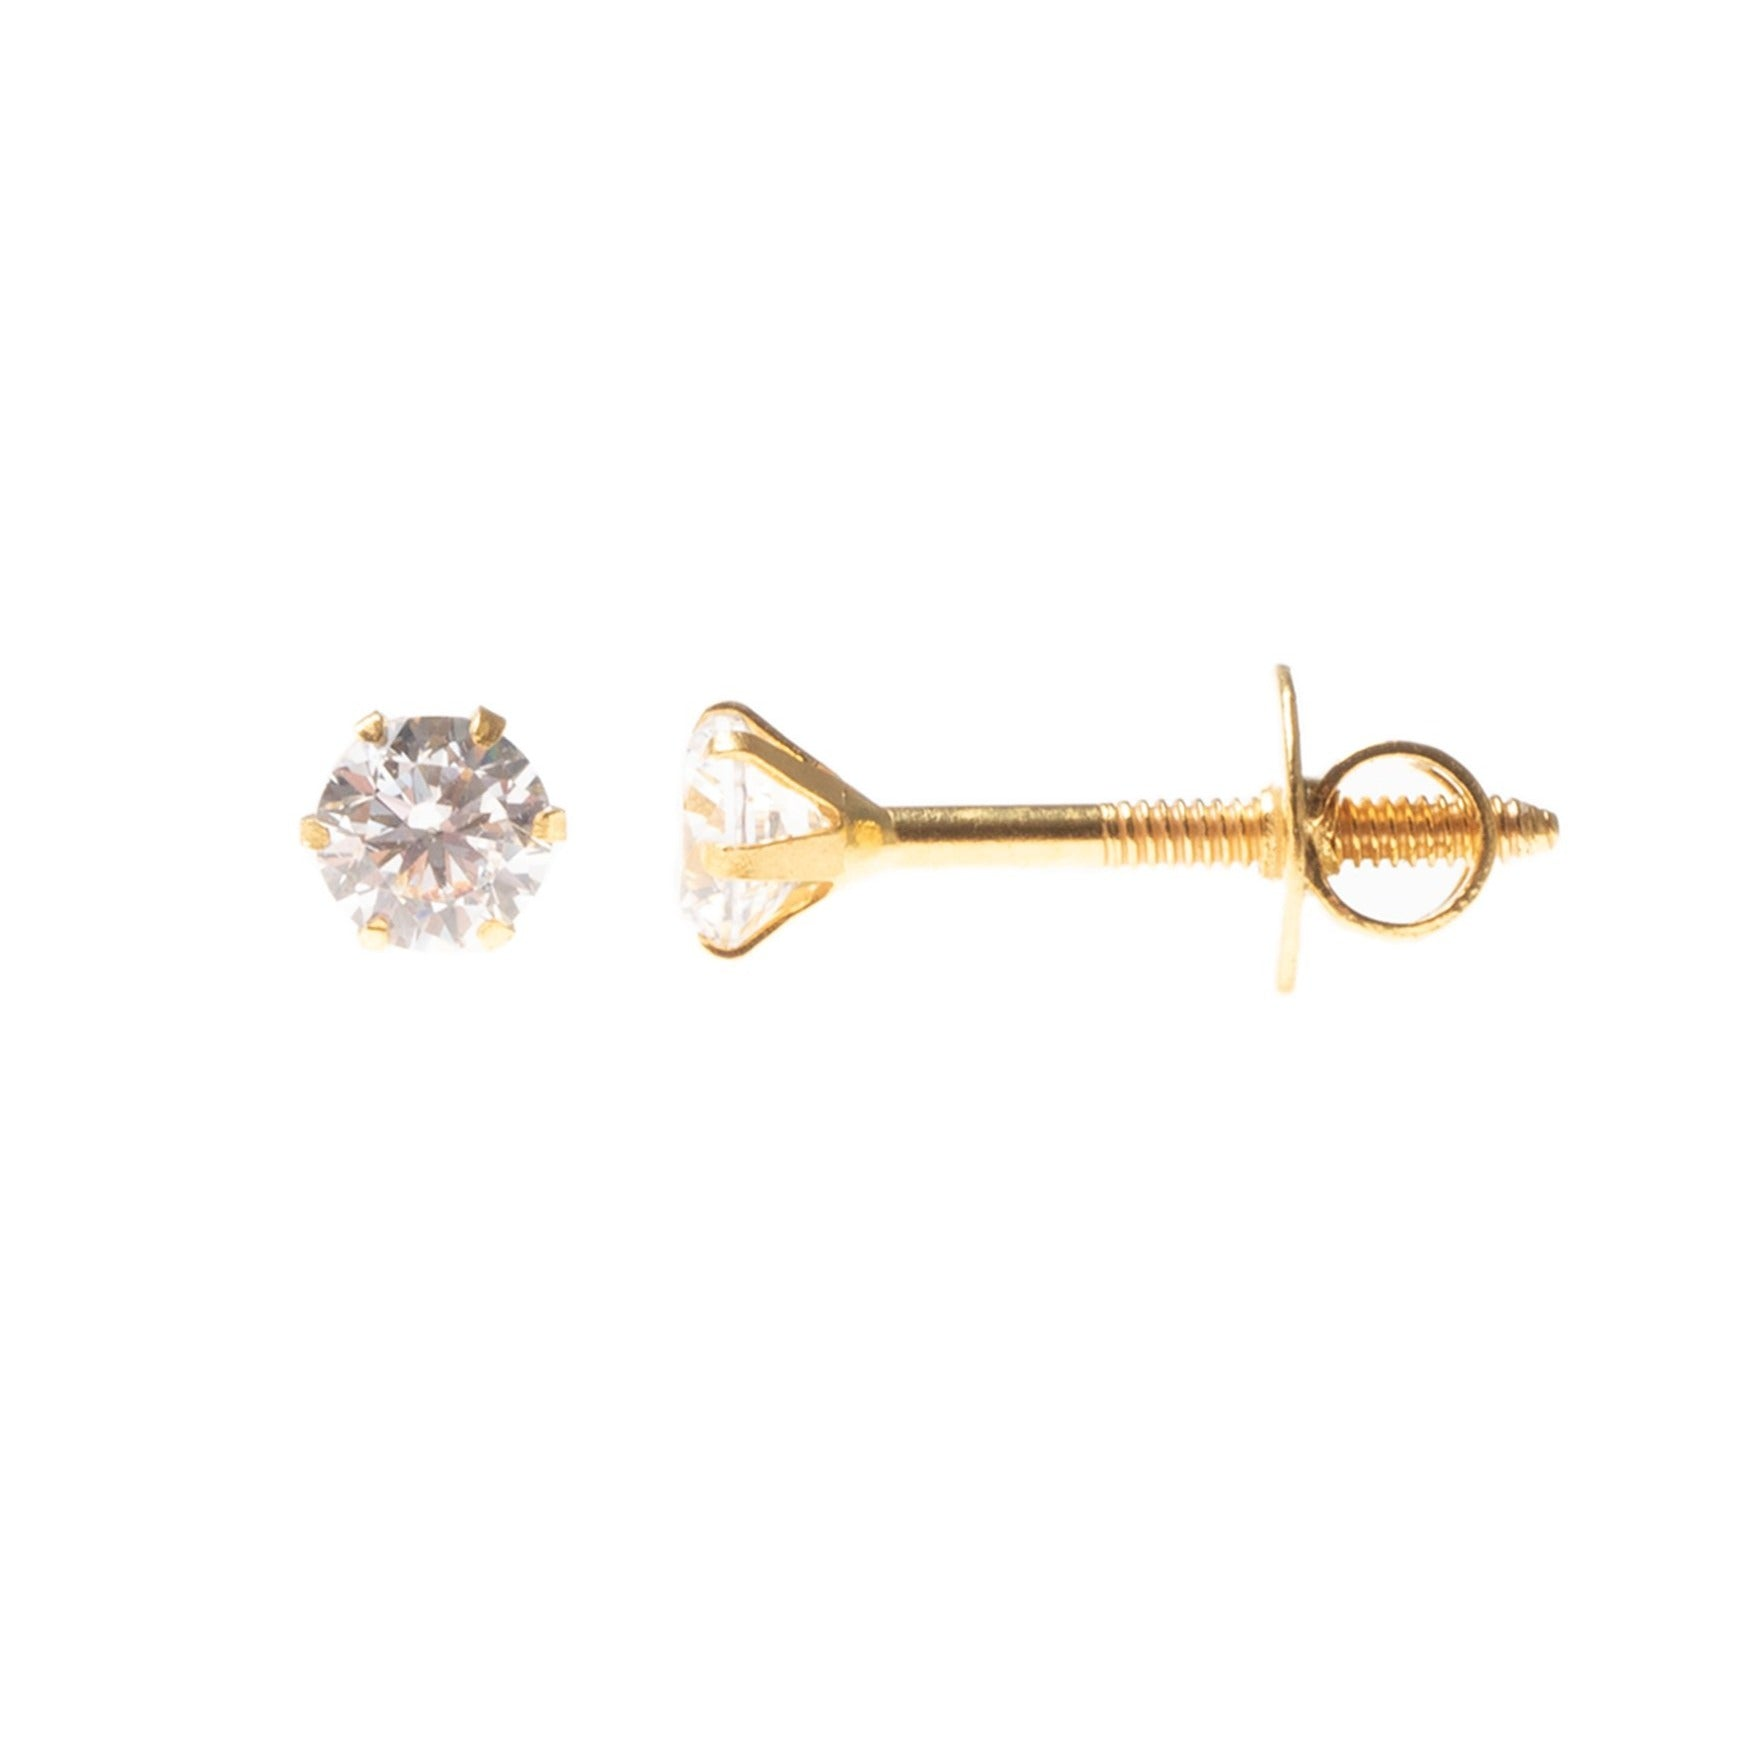 18ct Yellow Gold (with 22ct Gold Plating) Ear Studs set with Round Brilliant Cubic Zirconias